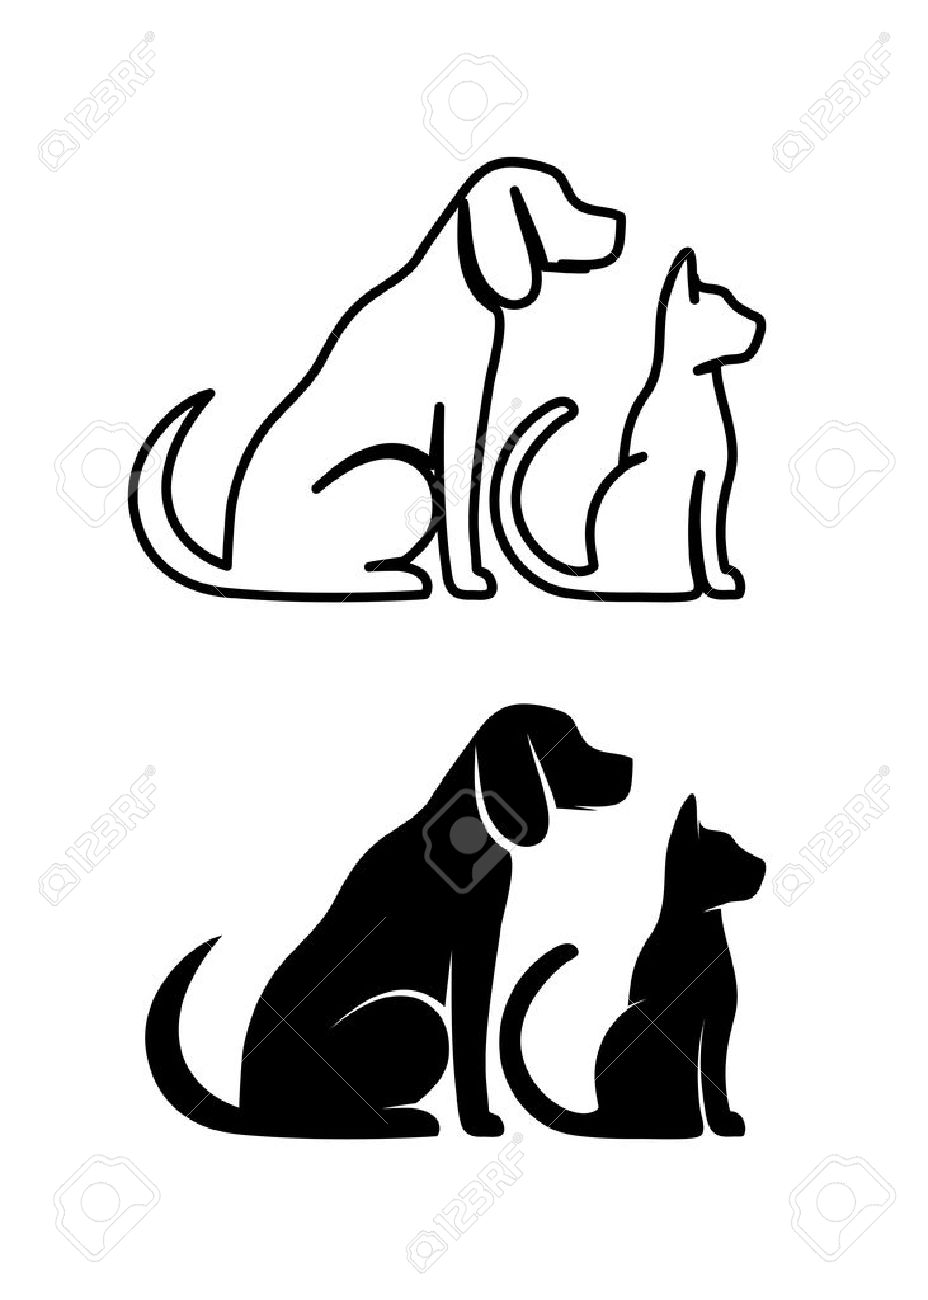 51 349 dog silhouette stock illustrations cliparts and royalty free